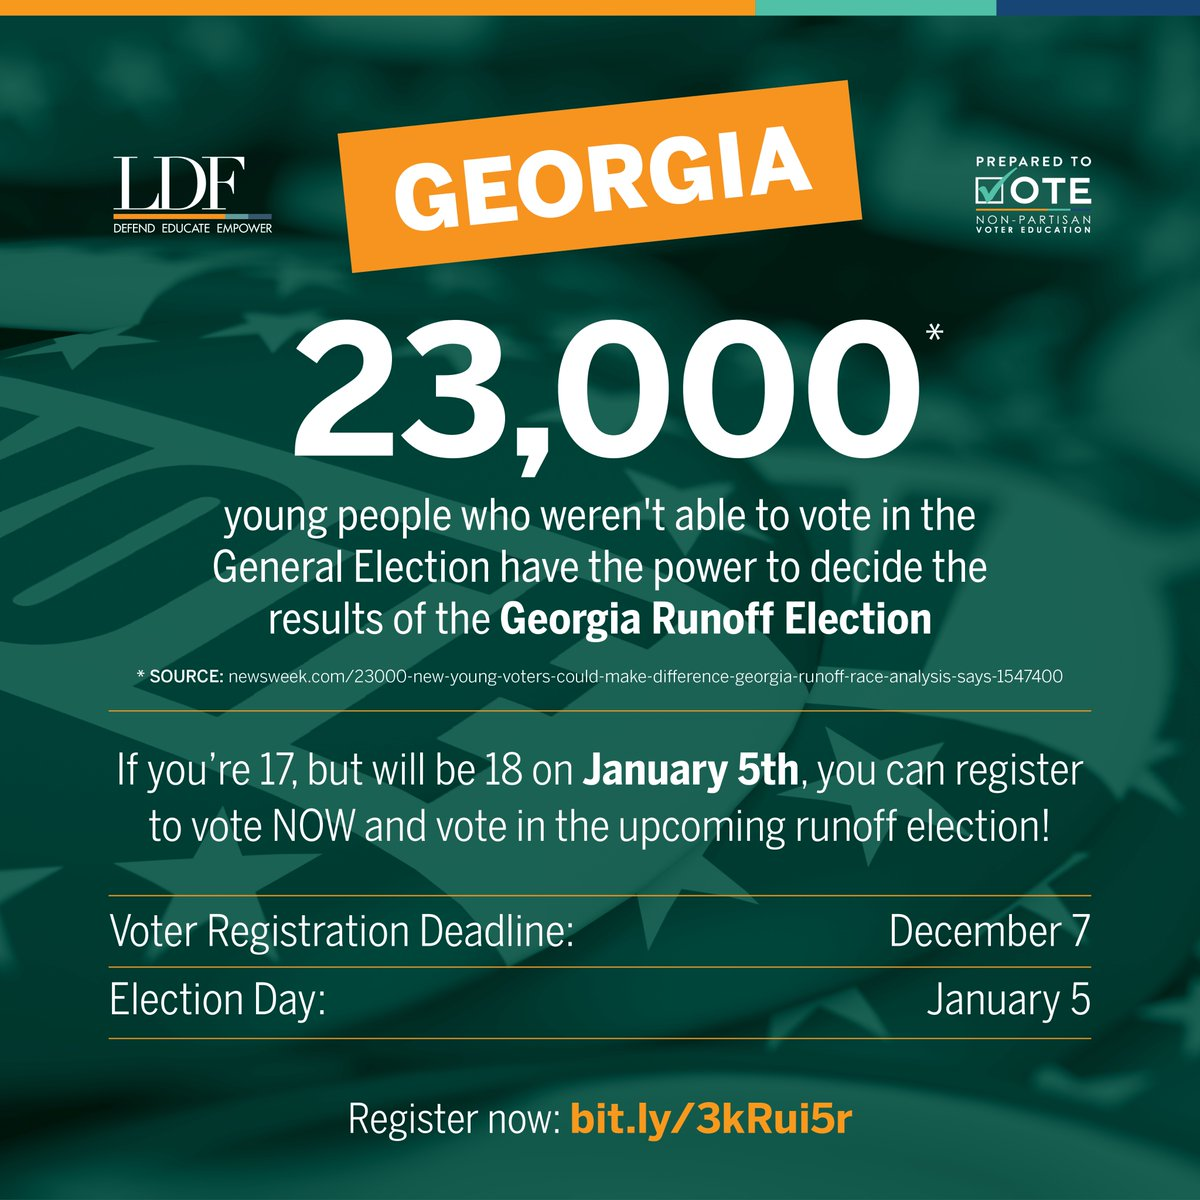 Georgia residents! 🍑 If you're 17 years old but will be 18 by January 5, you can vote in the upcoming Senate runoff elections. Young people will decide the makeup of the Senate, so register to vote by December 7 at https://t.co/mTTRaOPpPd. @NAACP_LDF #PreparedToVote https://t.co/0L6ADI6cQo